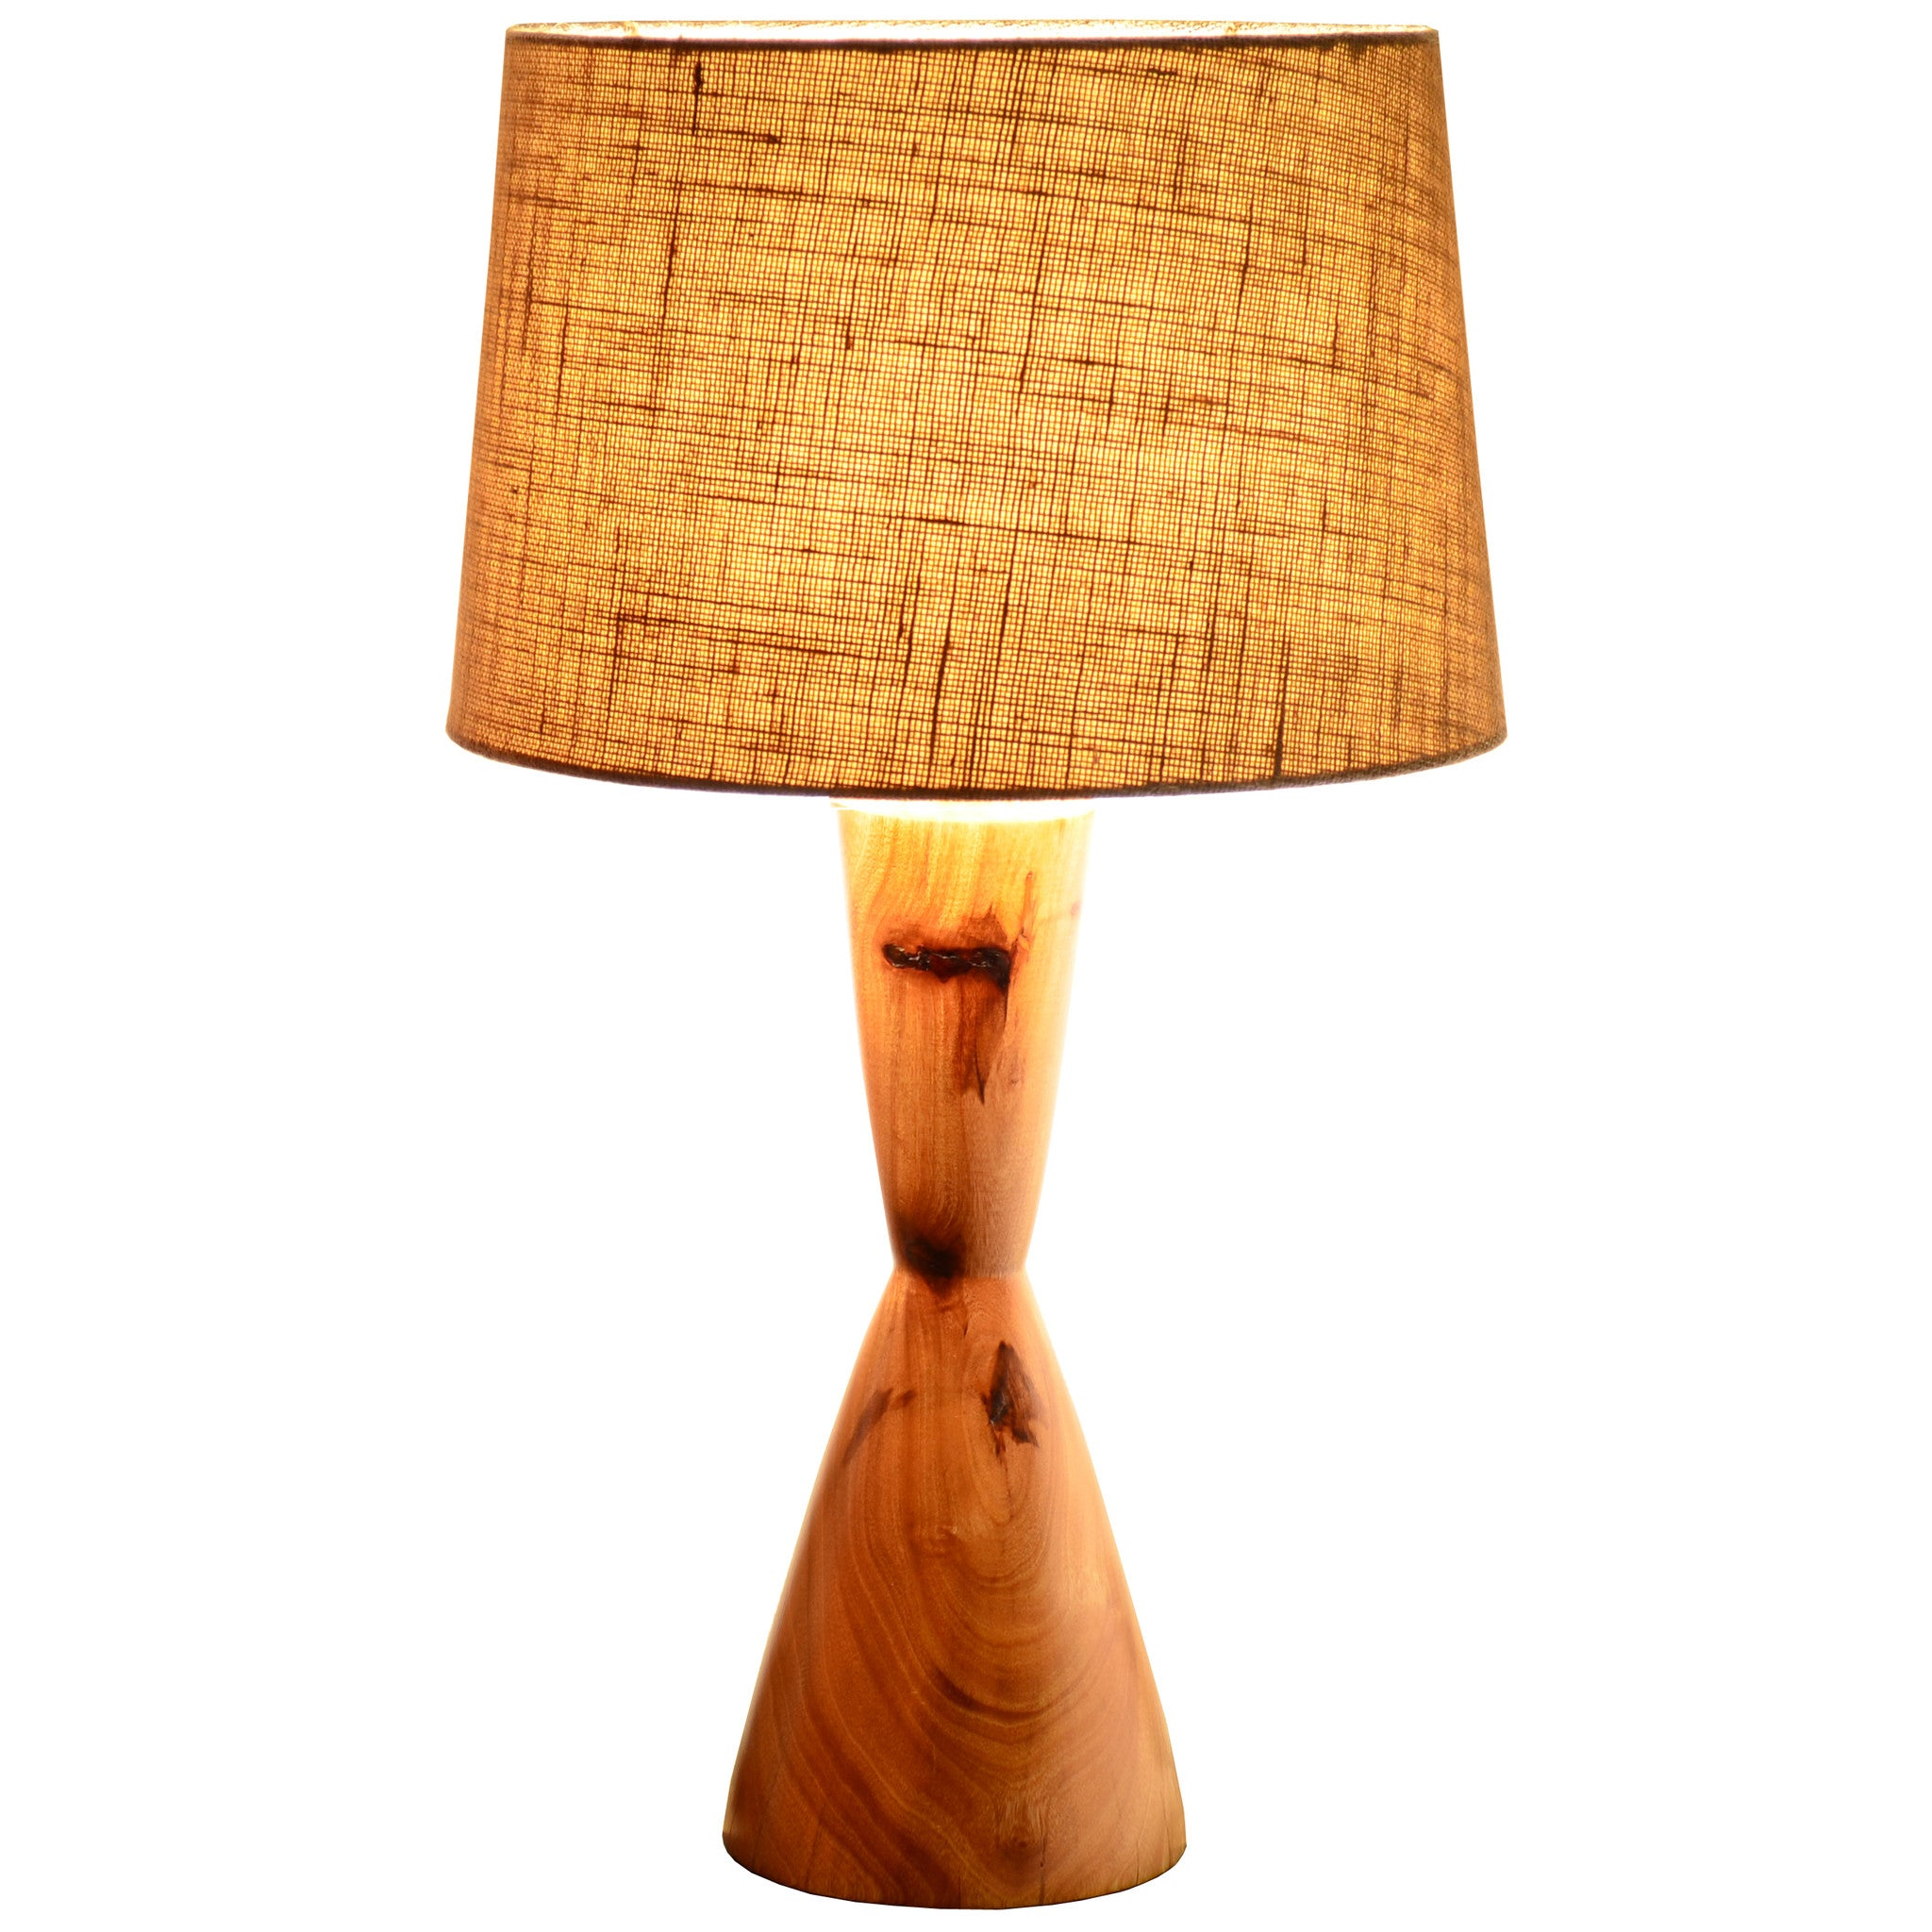 30   Amazing Turned Wood Lamp for Turned Wood Lamp Shade  59nar